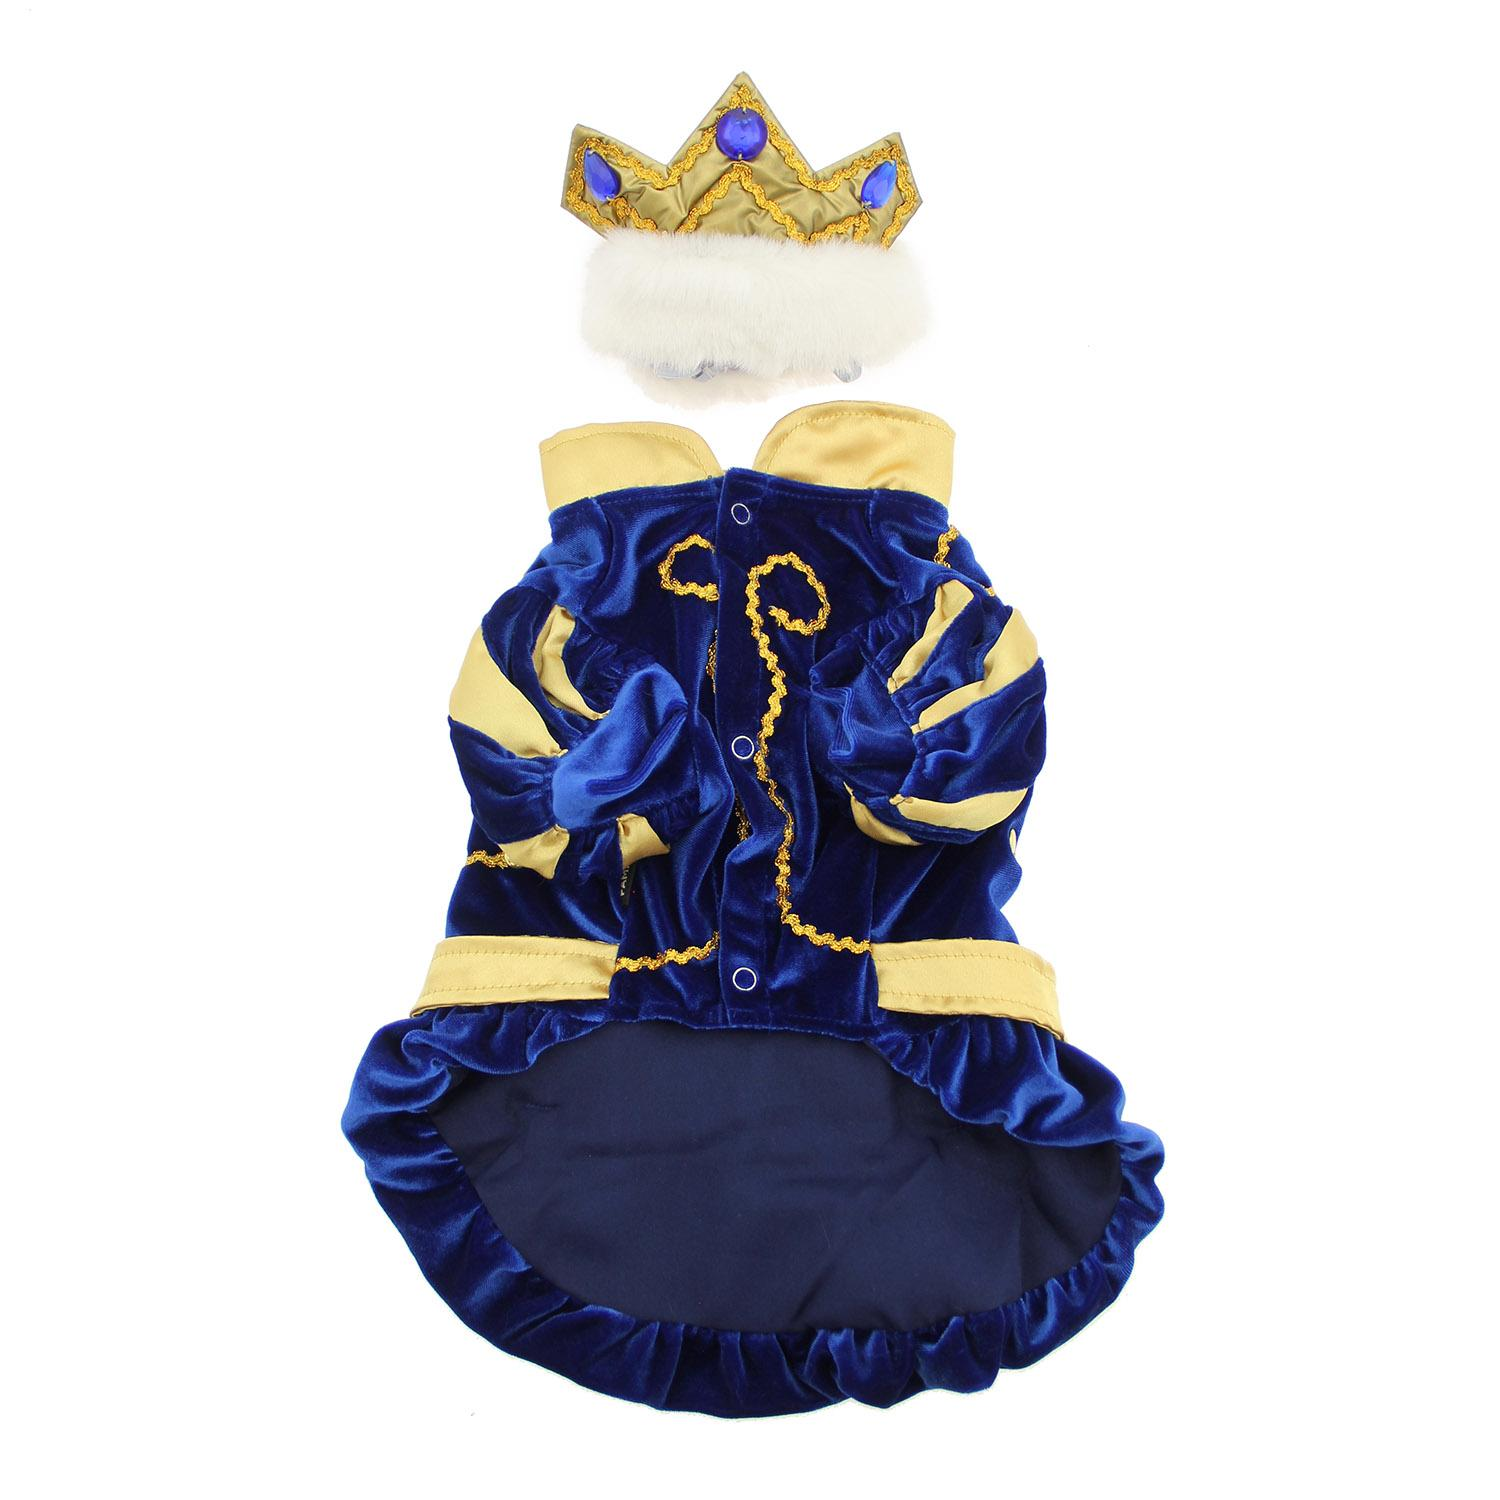 sc 1 st  BaxterBoo & Prince Charming Dog Costume | BaxterBoo